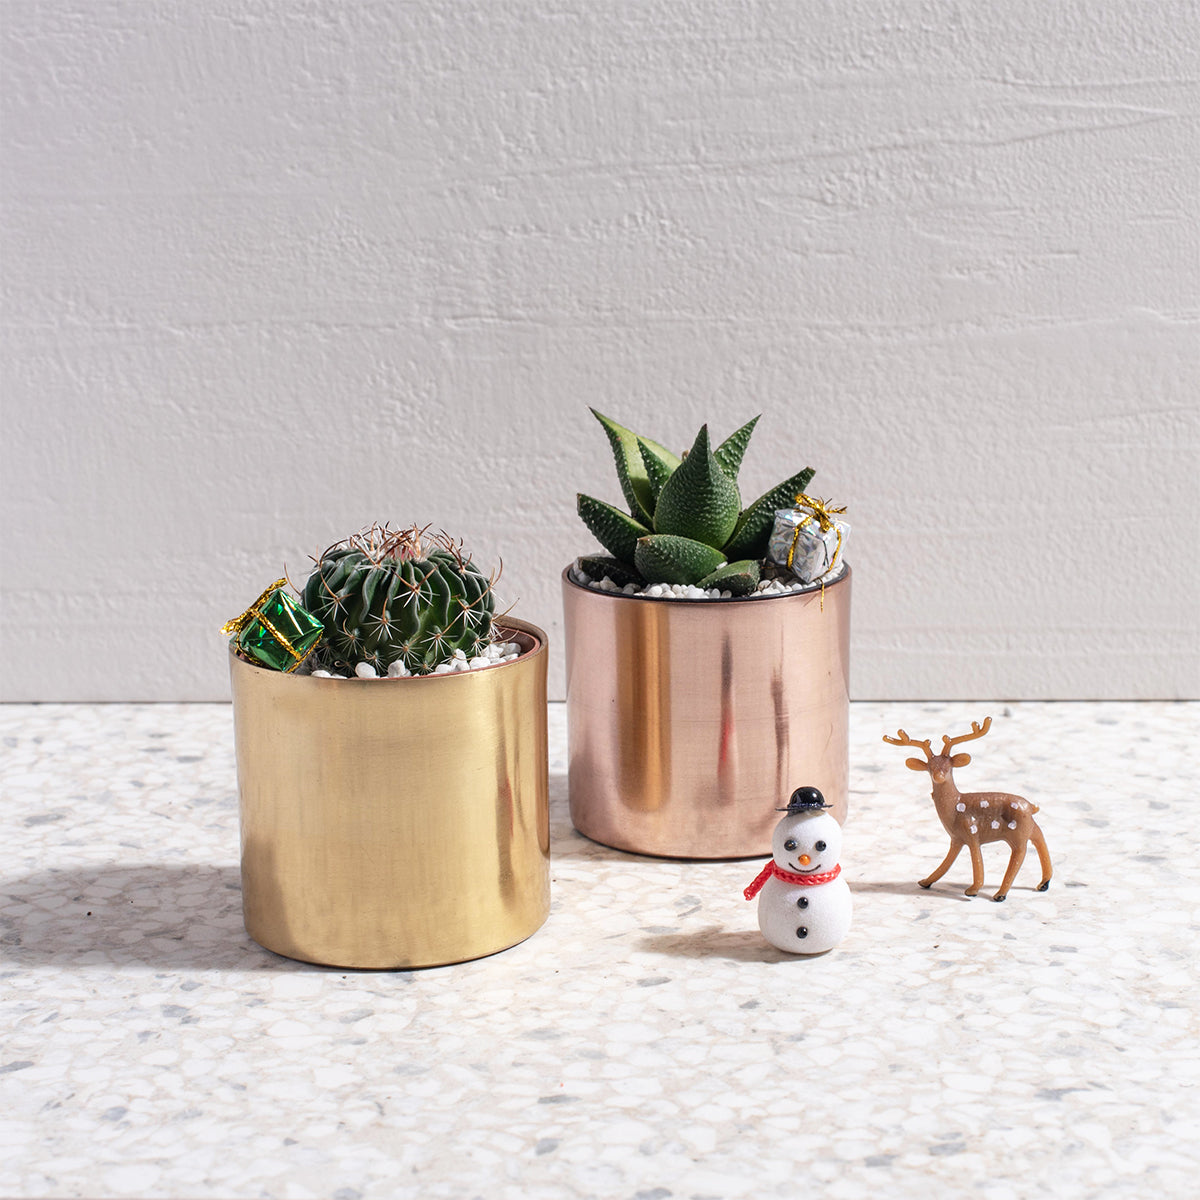 Christmas Pricks and Succs